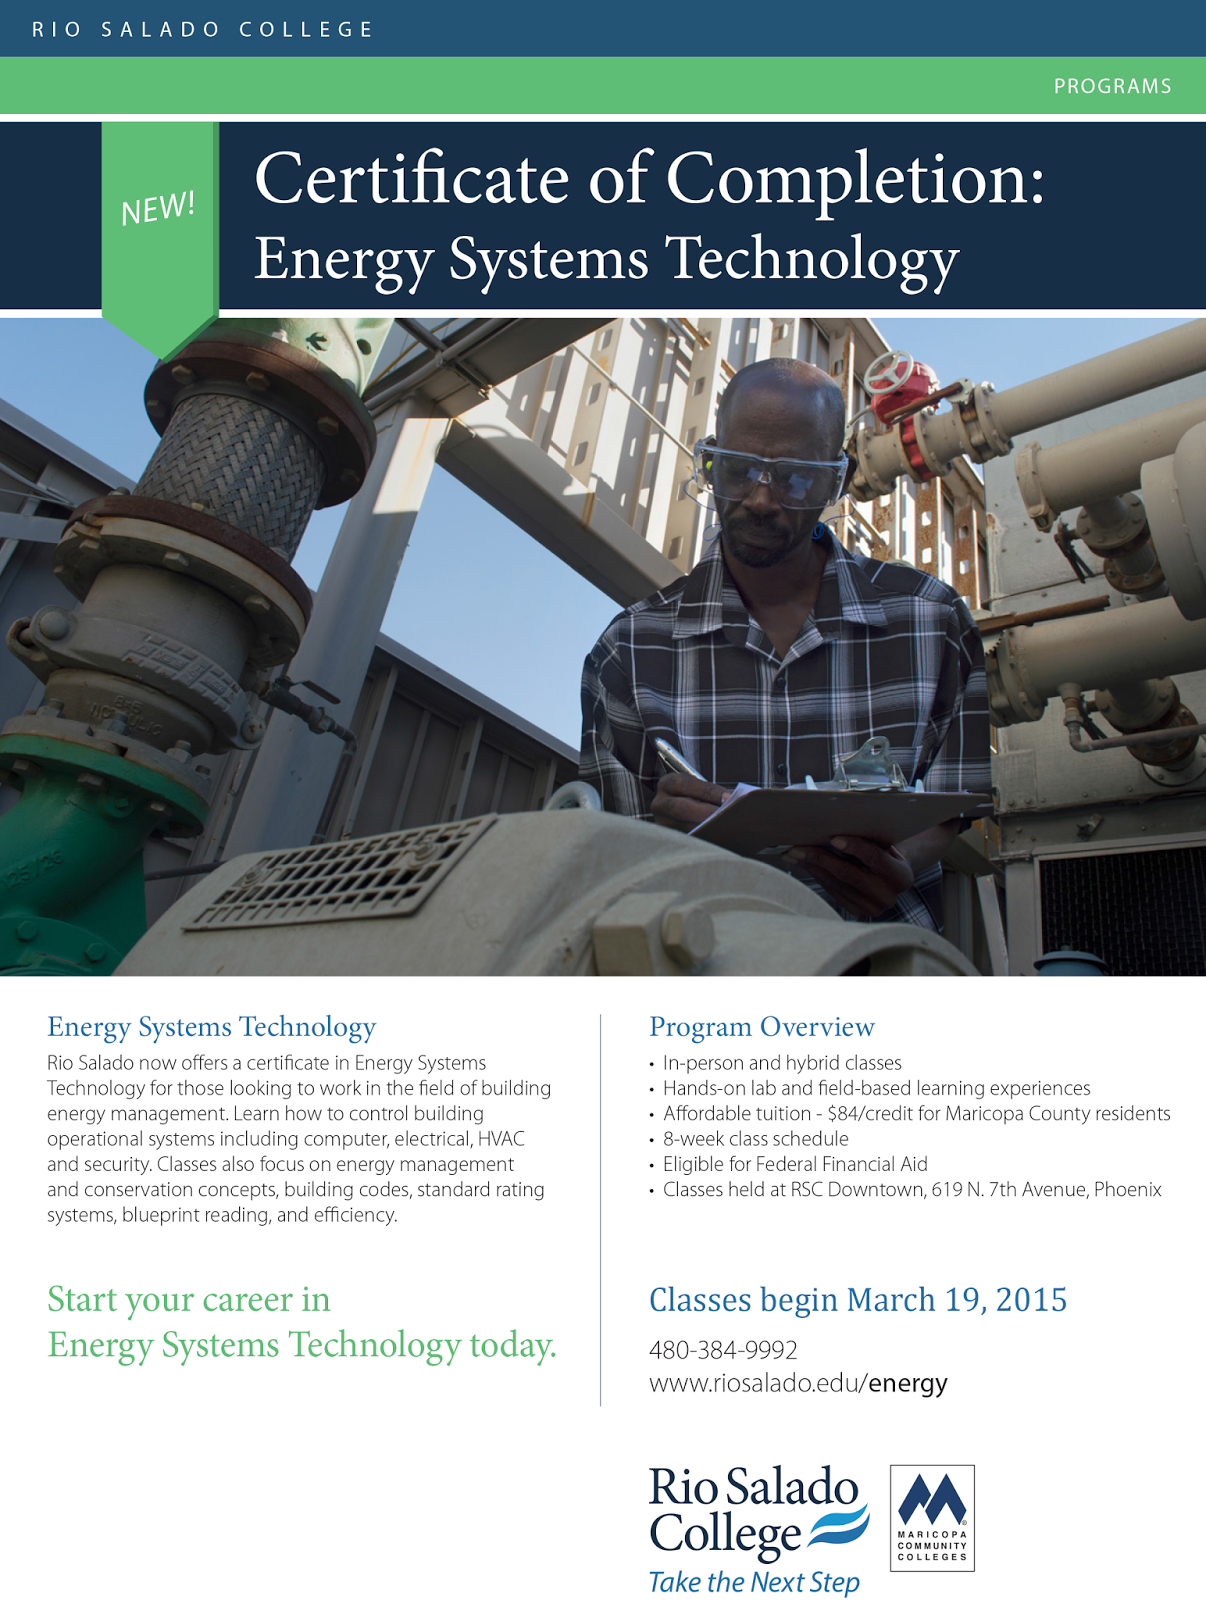 Flier for Energy Systems Technology.  See text details below.